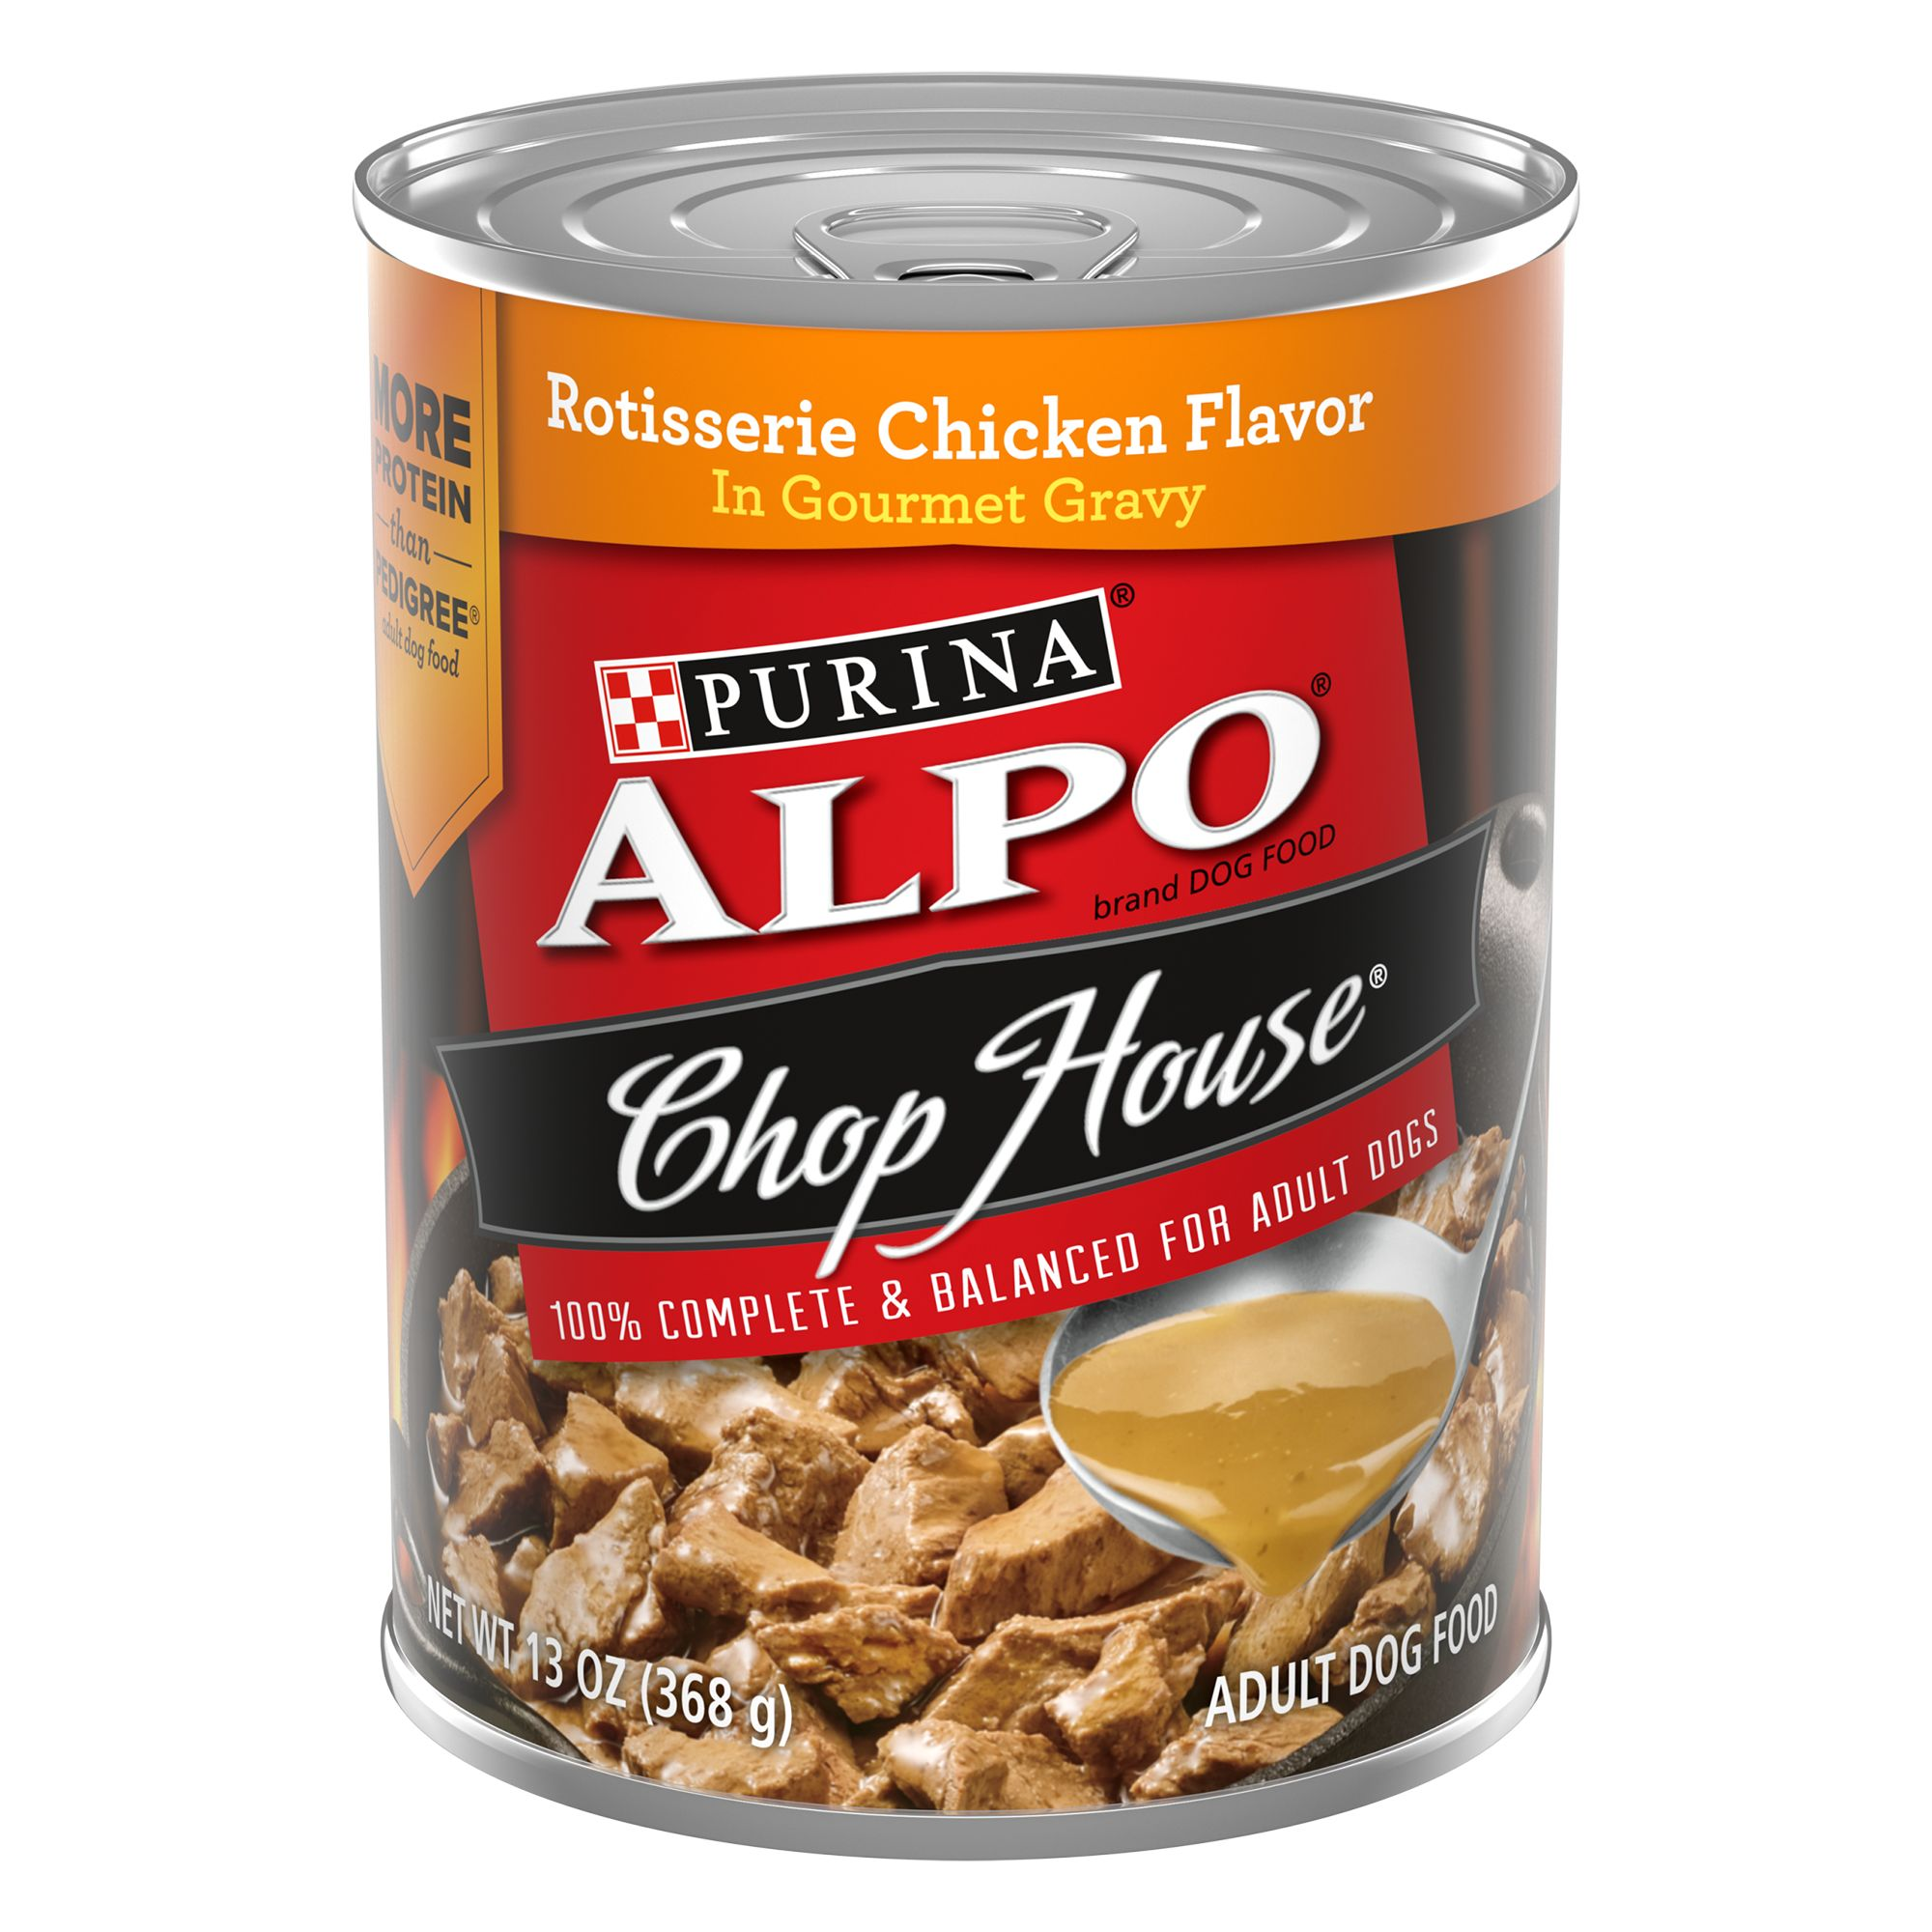 Purina® Alpo® Chophouse Originals Adult Dog Food size: 13.2 Oz 5142067